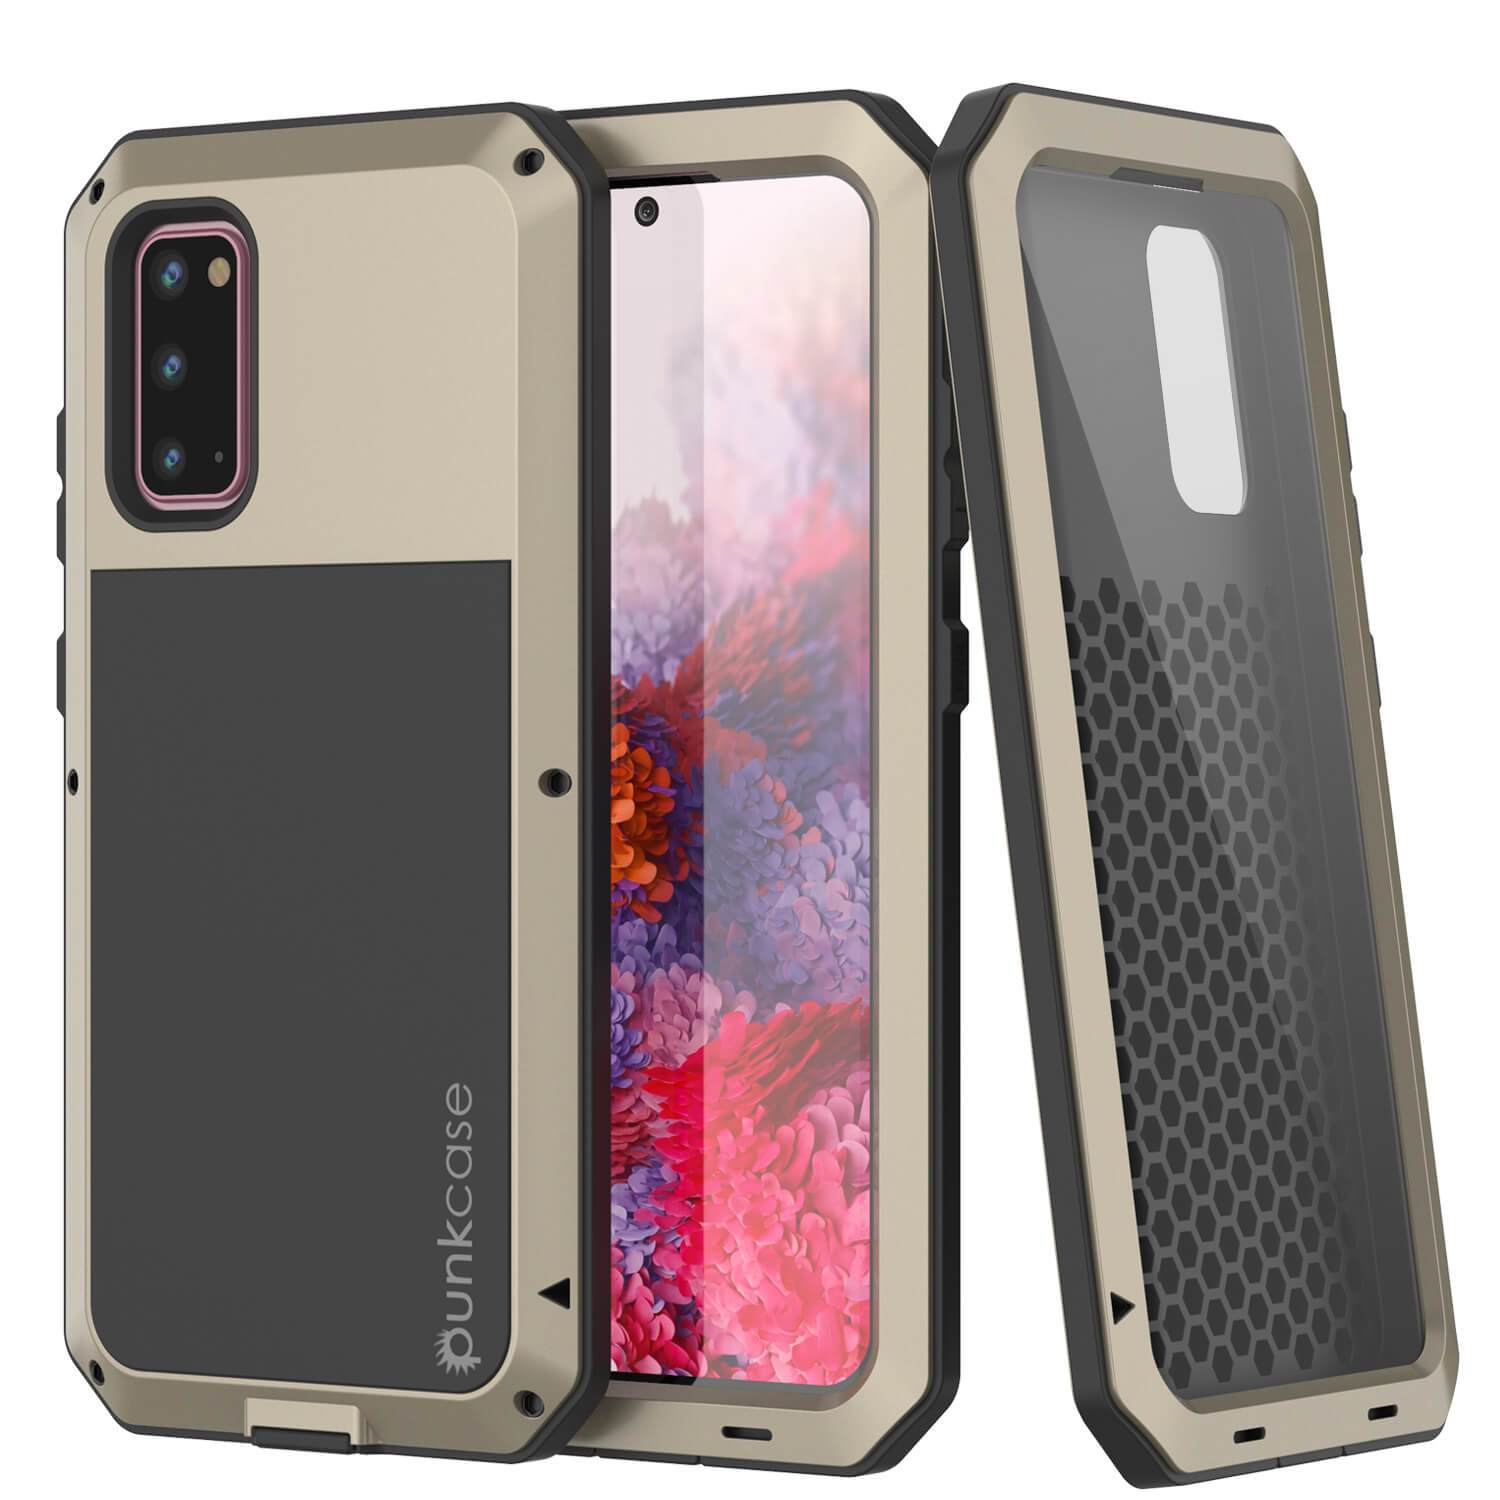 Galaxy s20 Metal Case, Heavy Duty Military Grade Rugged Armor Cover [Gold]